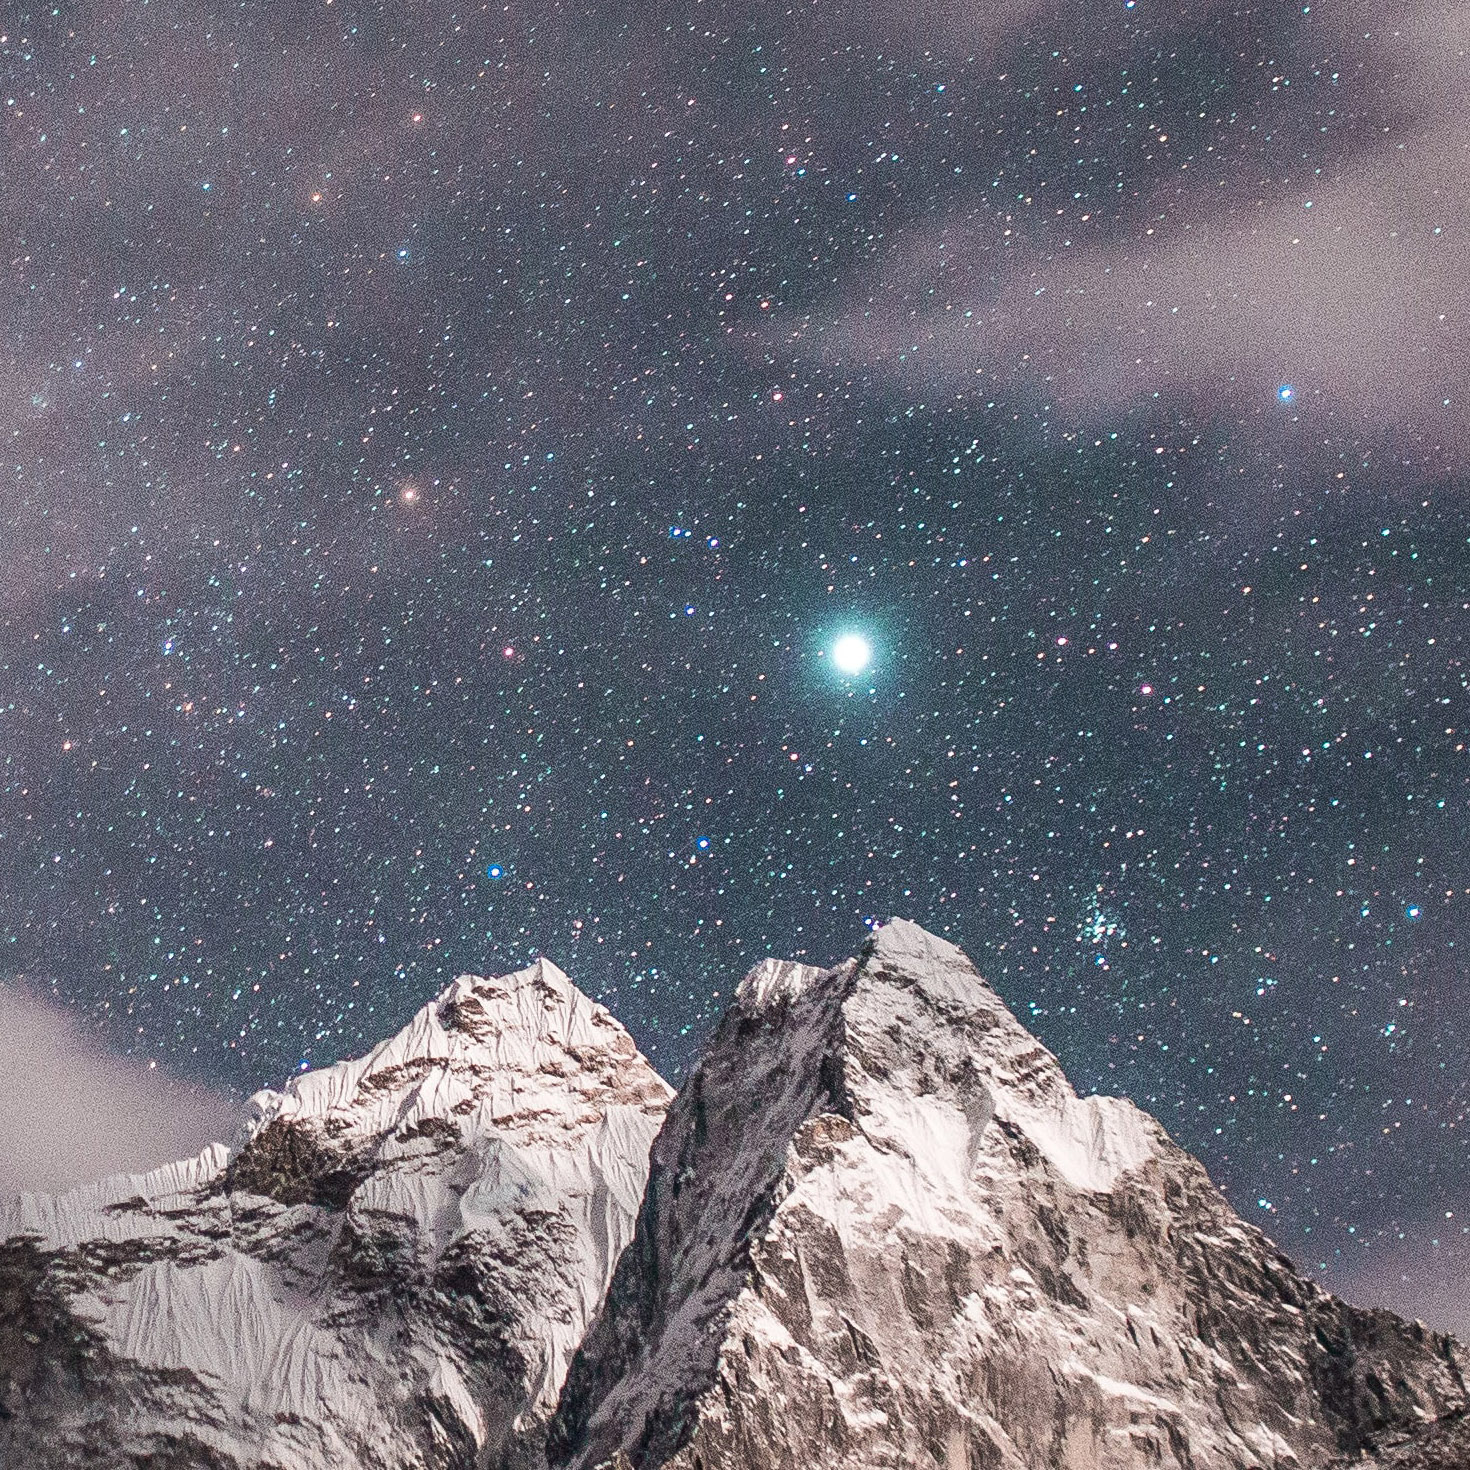 Name a Star Gifts – How to Name a Star – Is It Real?